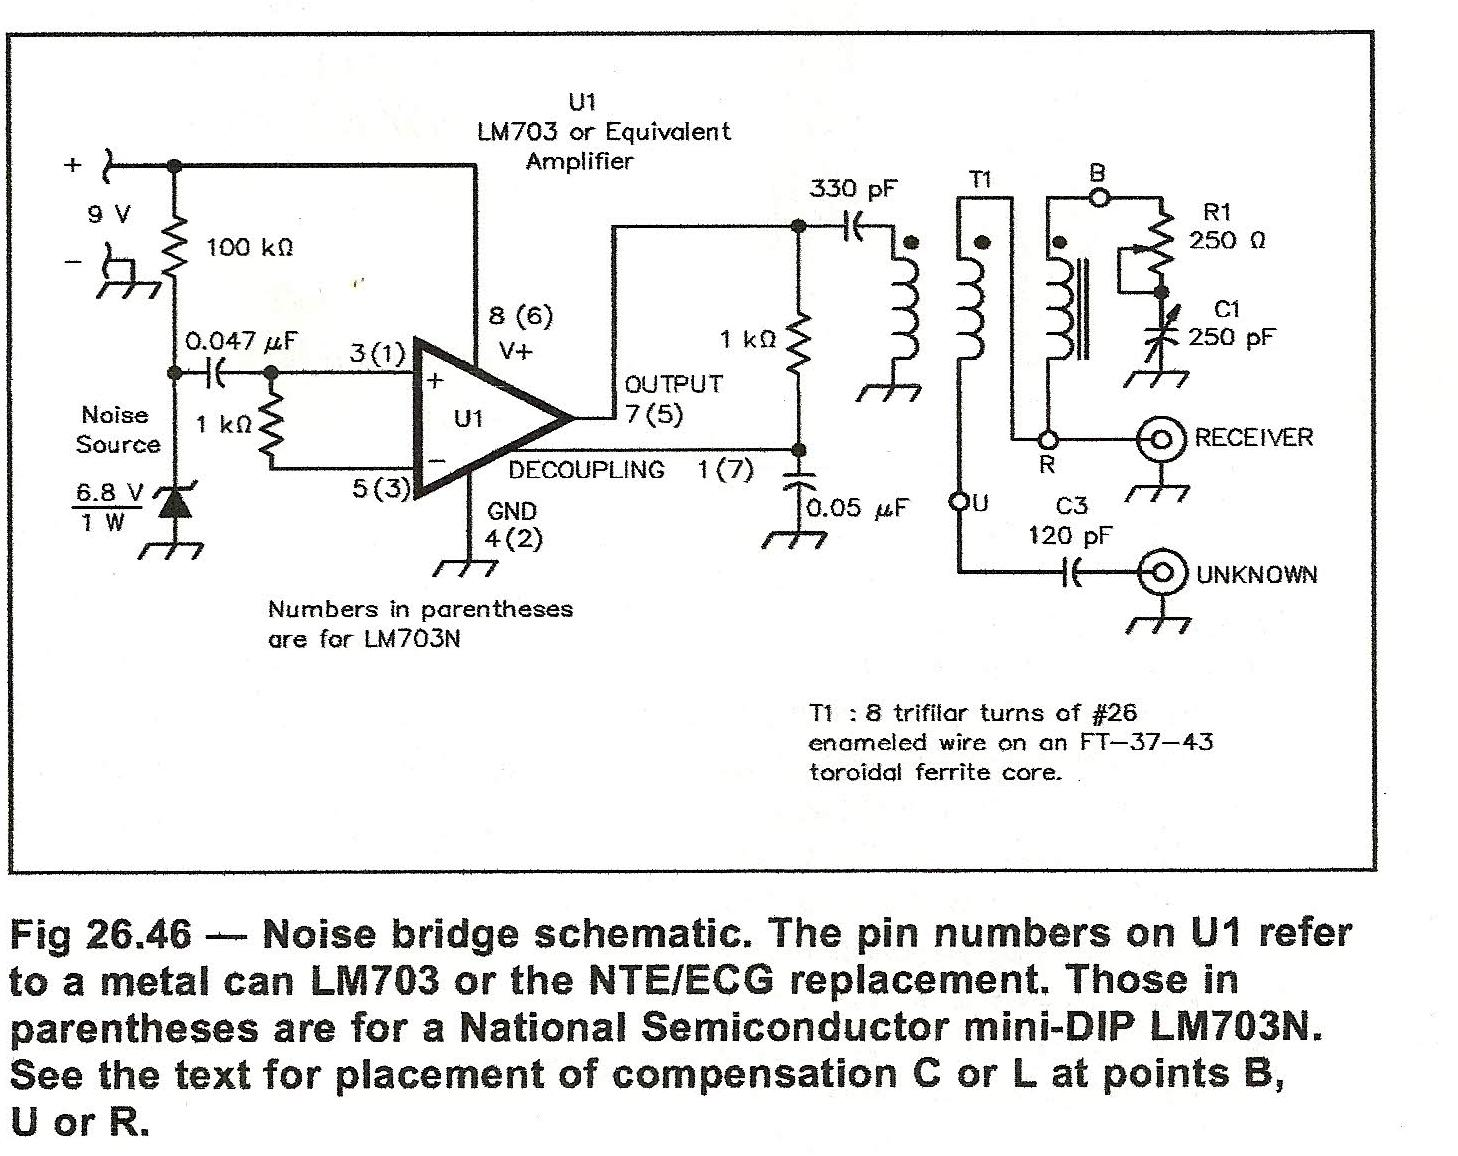 small resolution of for those who like to homebrew and need detailed build instructions as i do i have attached a noise bridge from test equipment by clive smith g4fzh using